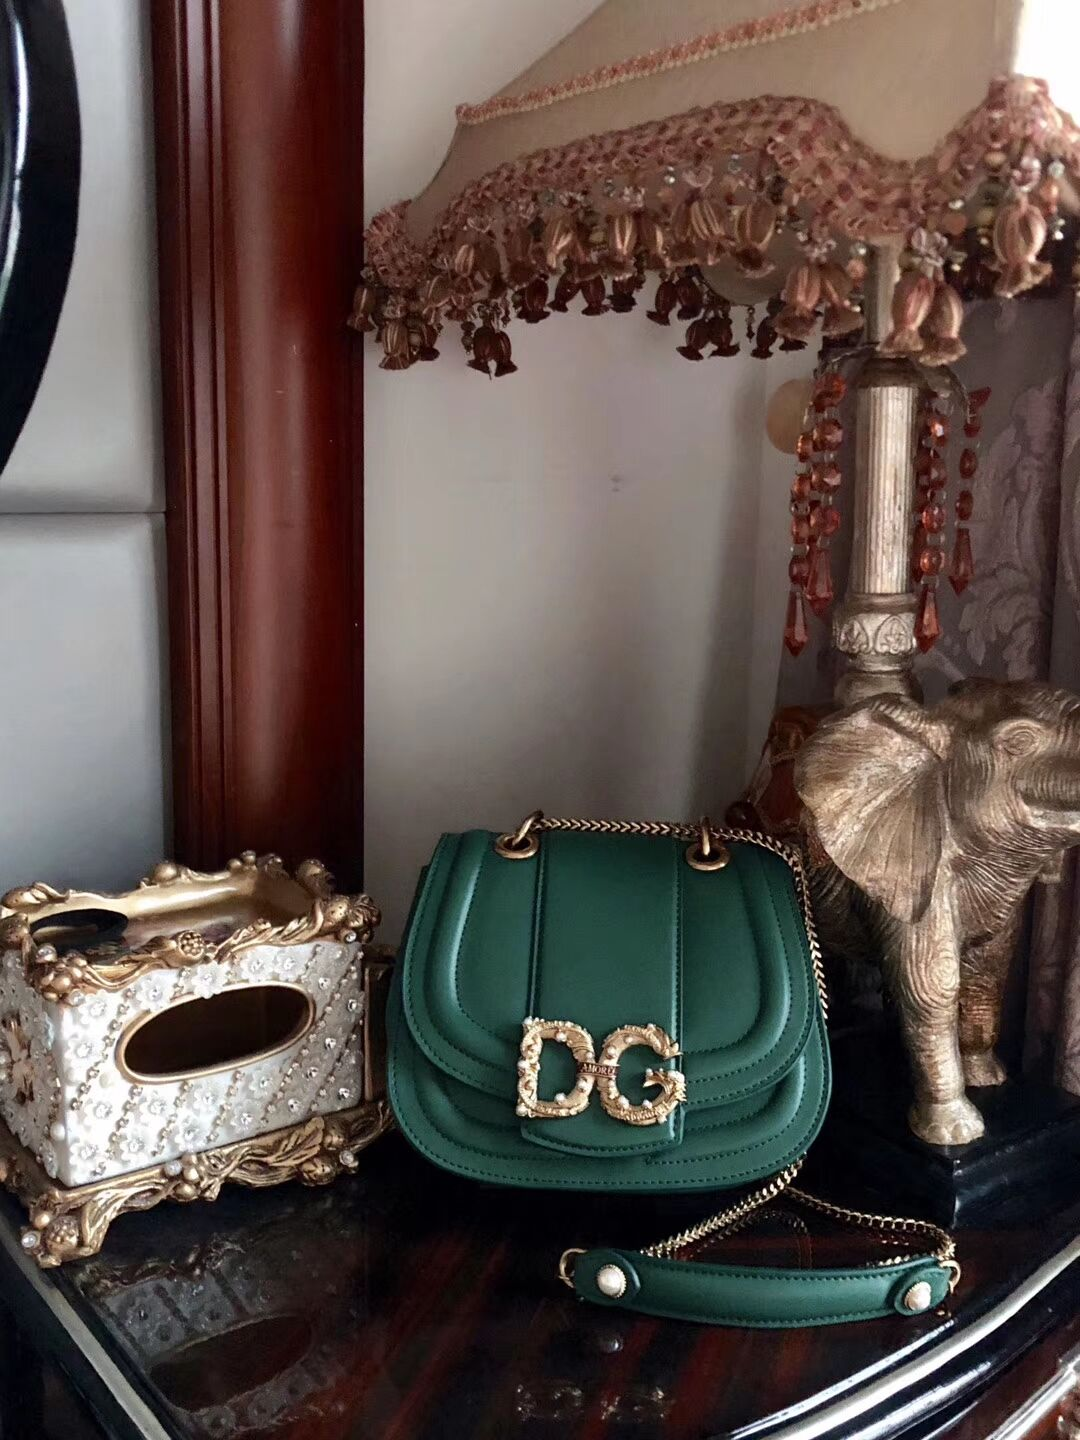 Dolce & Gabbana Origianl Leather Bag 4917 Green